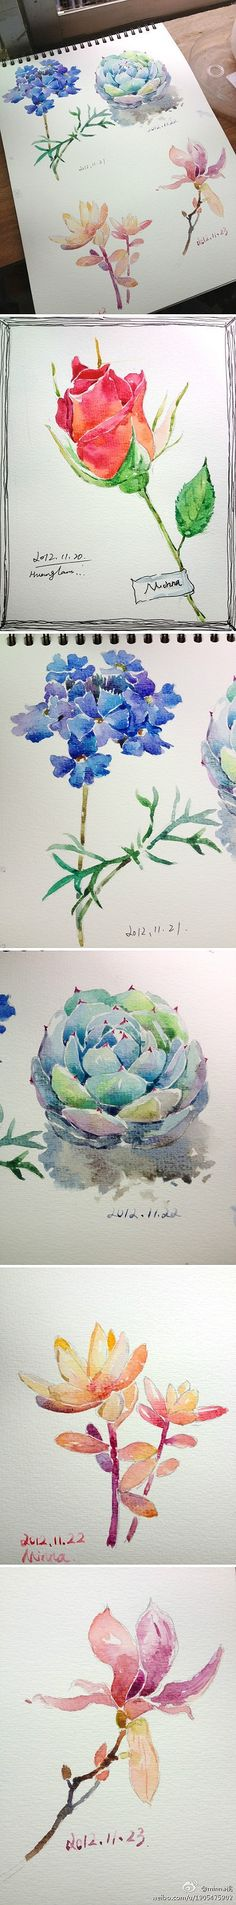 水彩 插画手绘 minna桃的照片 try these flowers